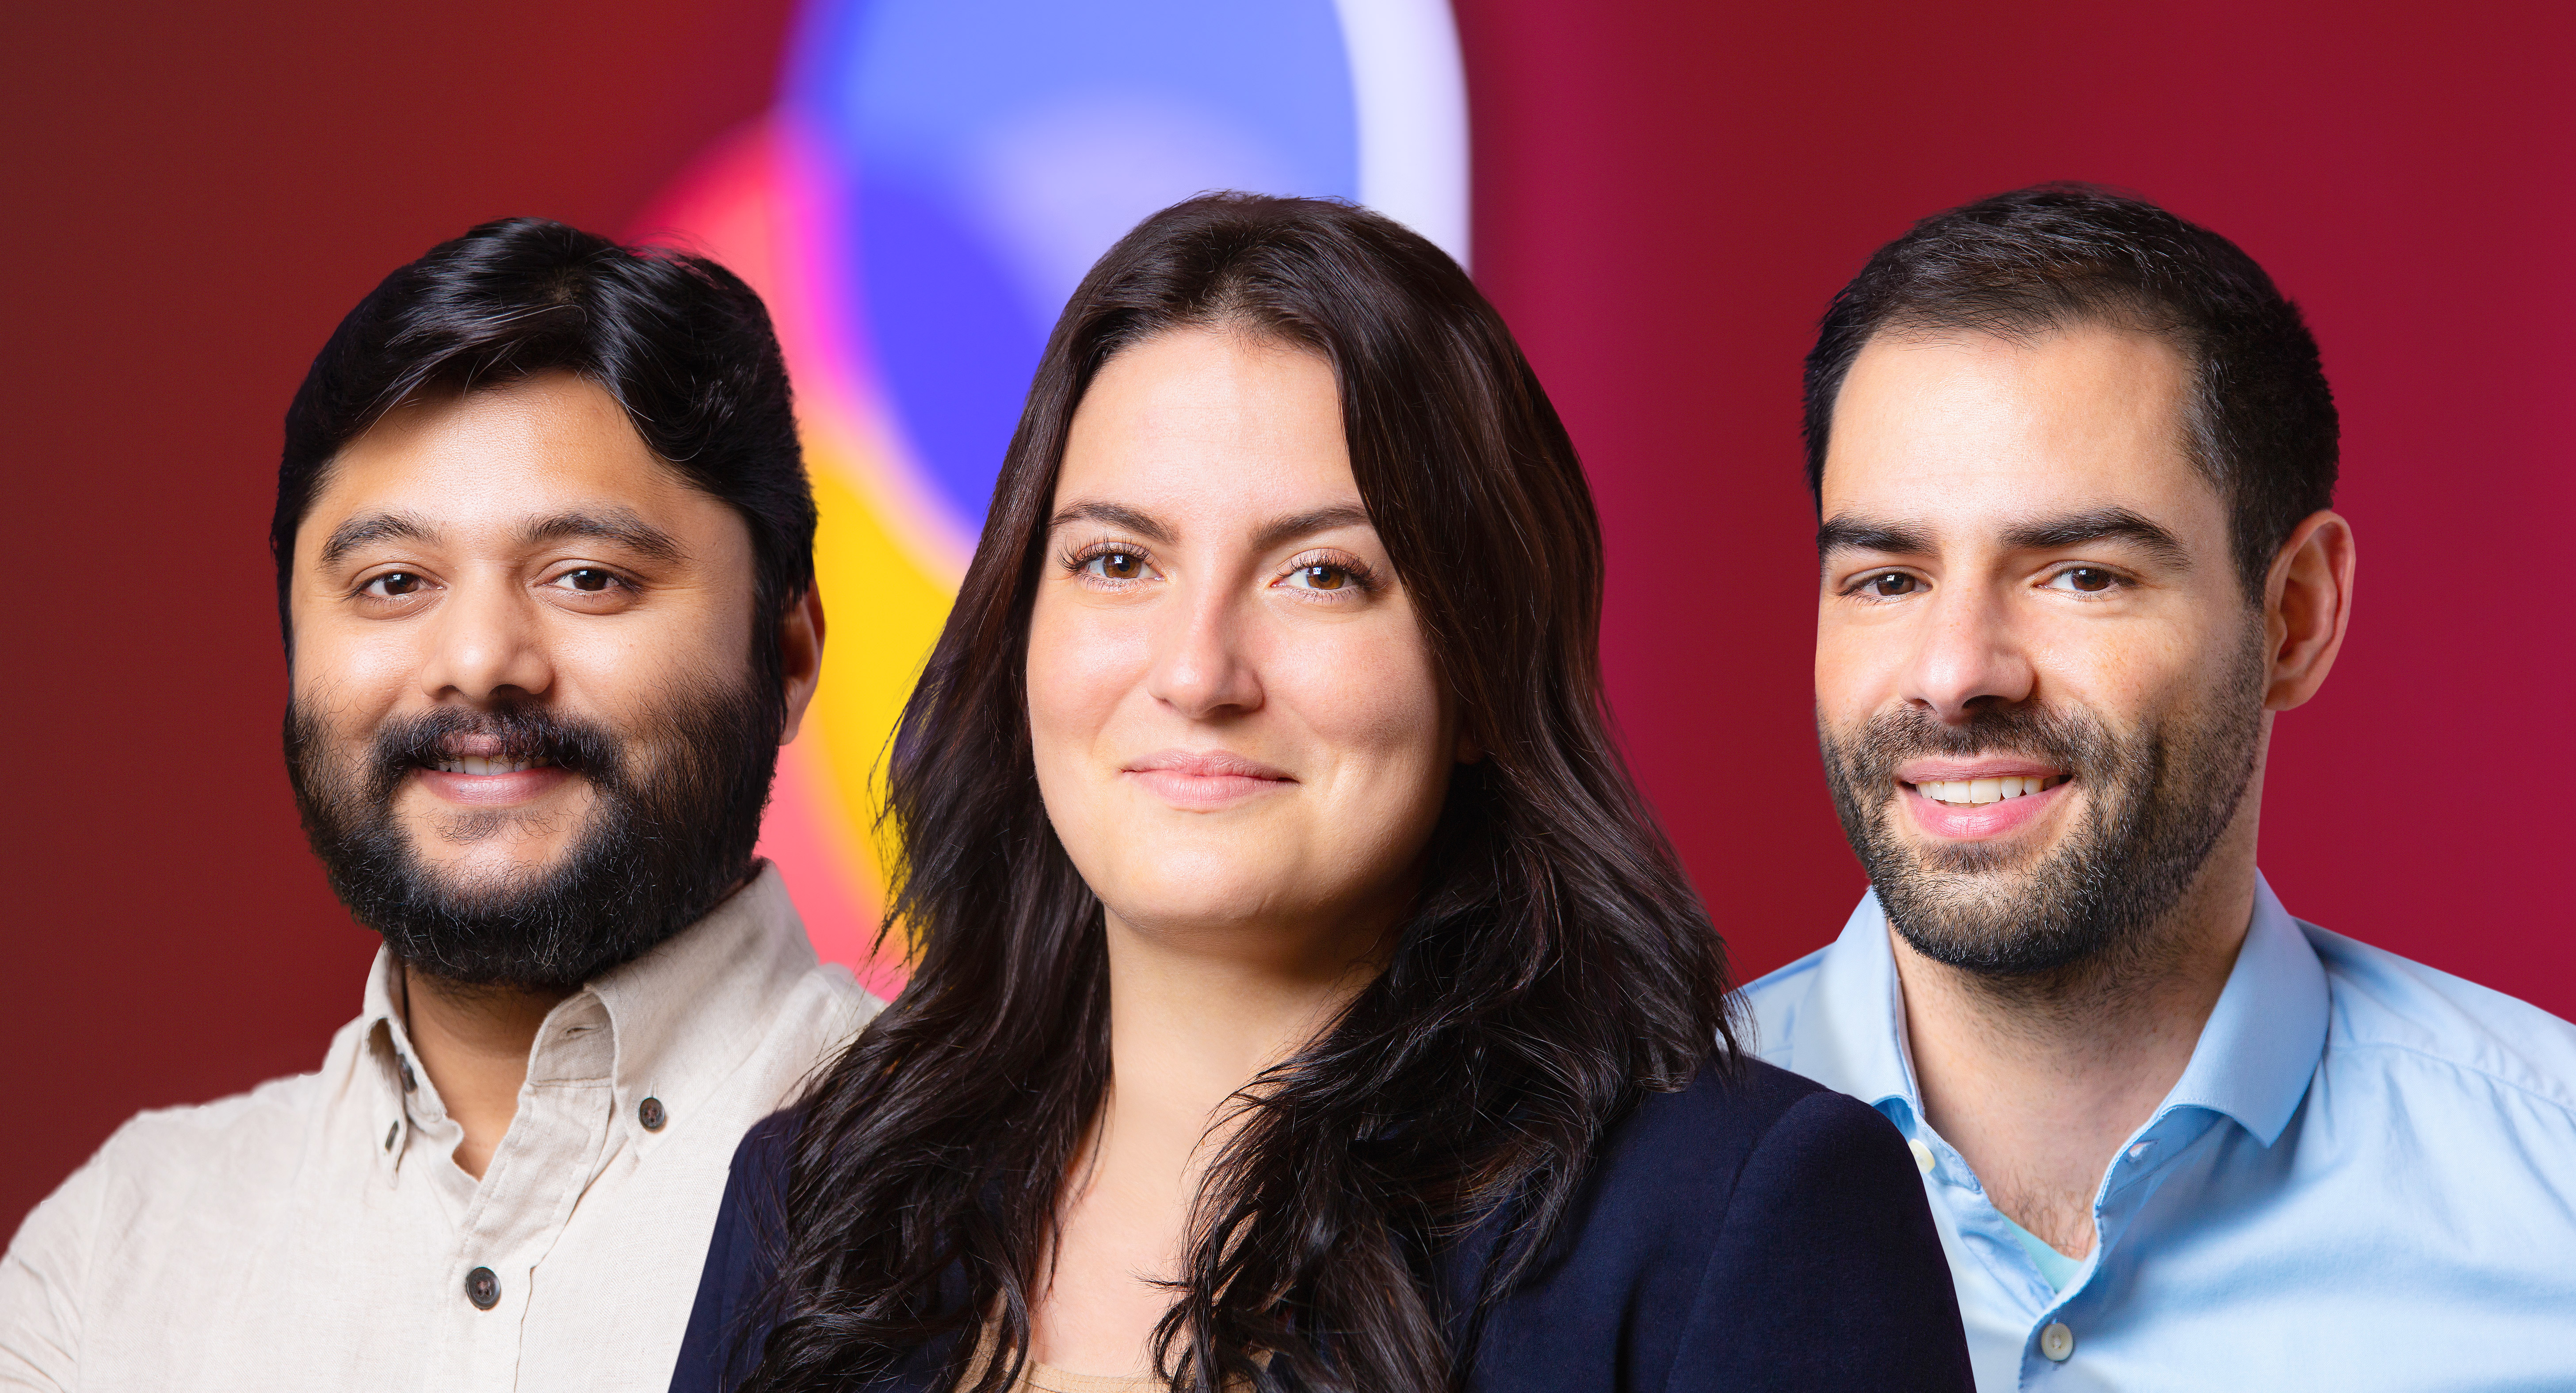 LOVOO Reveals New Management Team Lineup